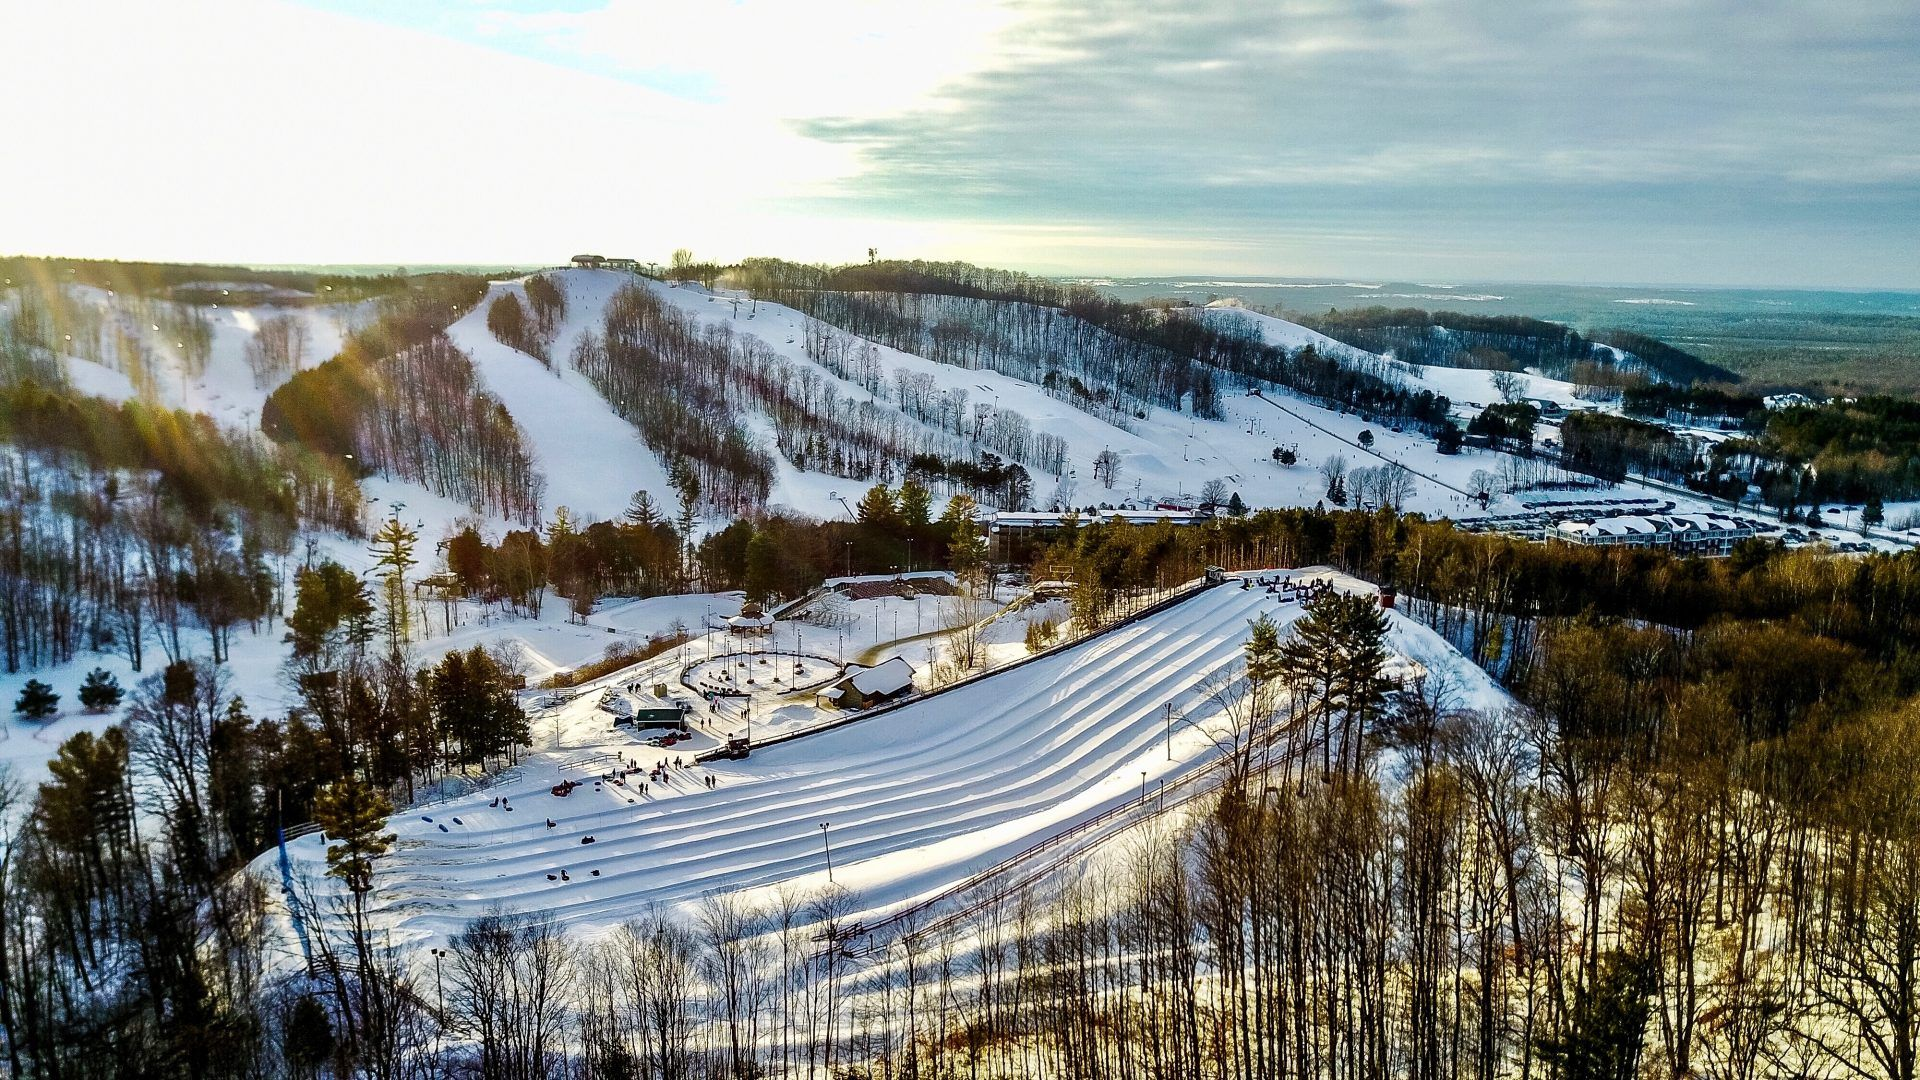 This is the longest snow tubing hill in Ontario (PHOTOS)